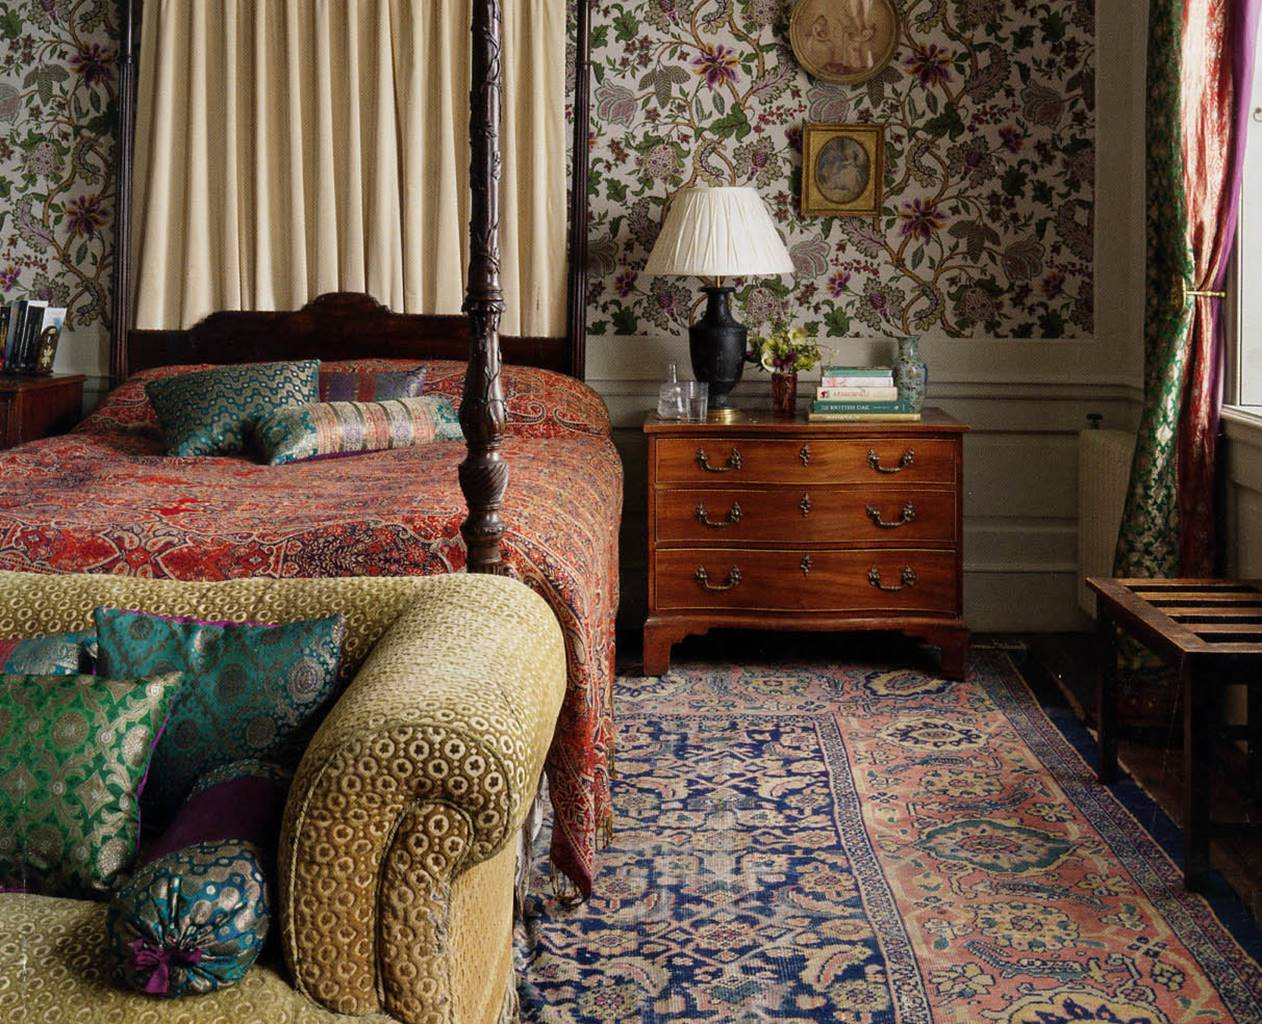 Rugs for Sale Online - Handmade Rug Sale NJ - Hand Knotted Rugs - SH Rugs